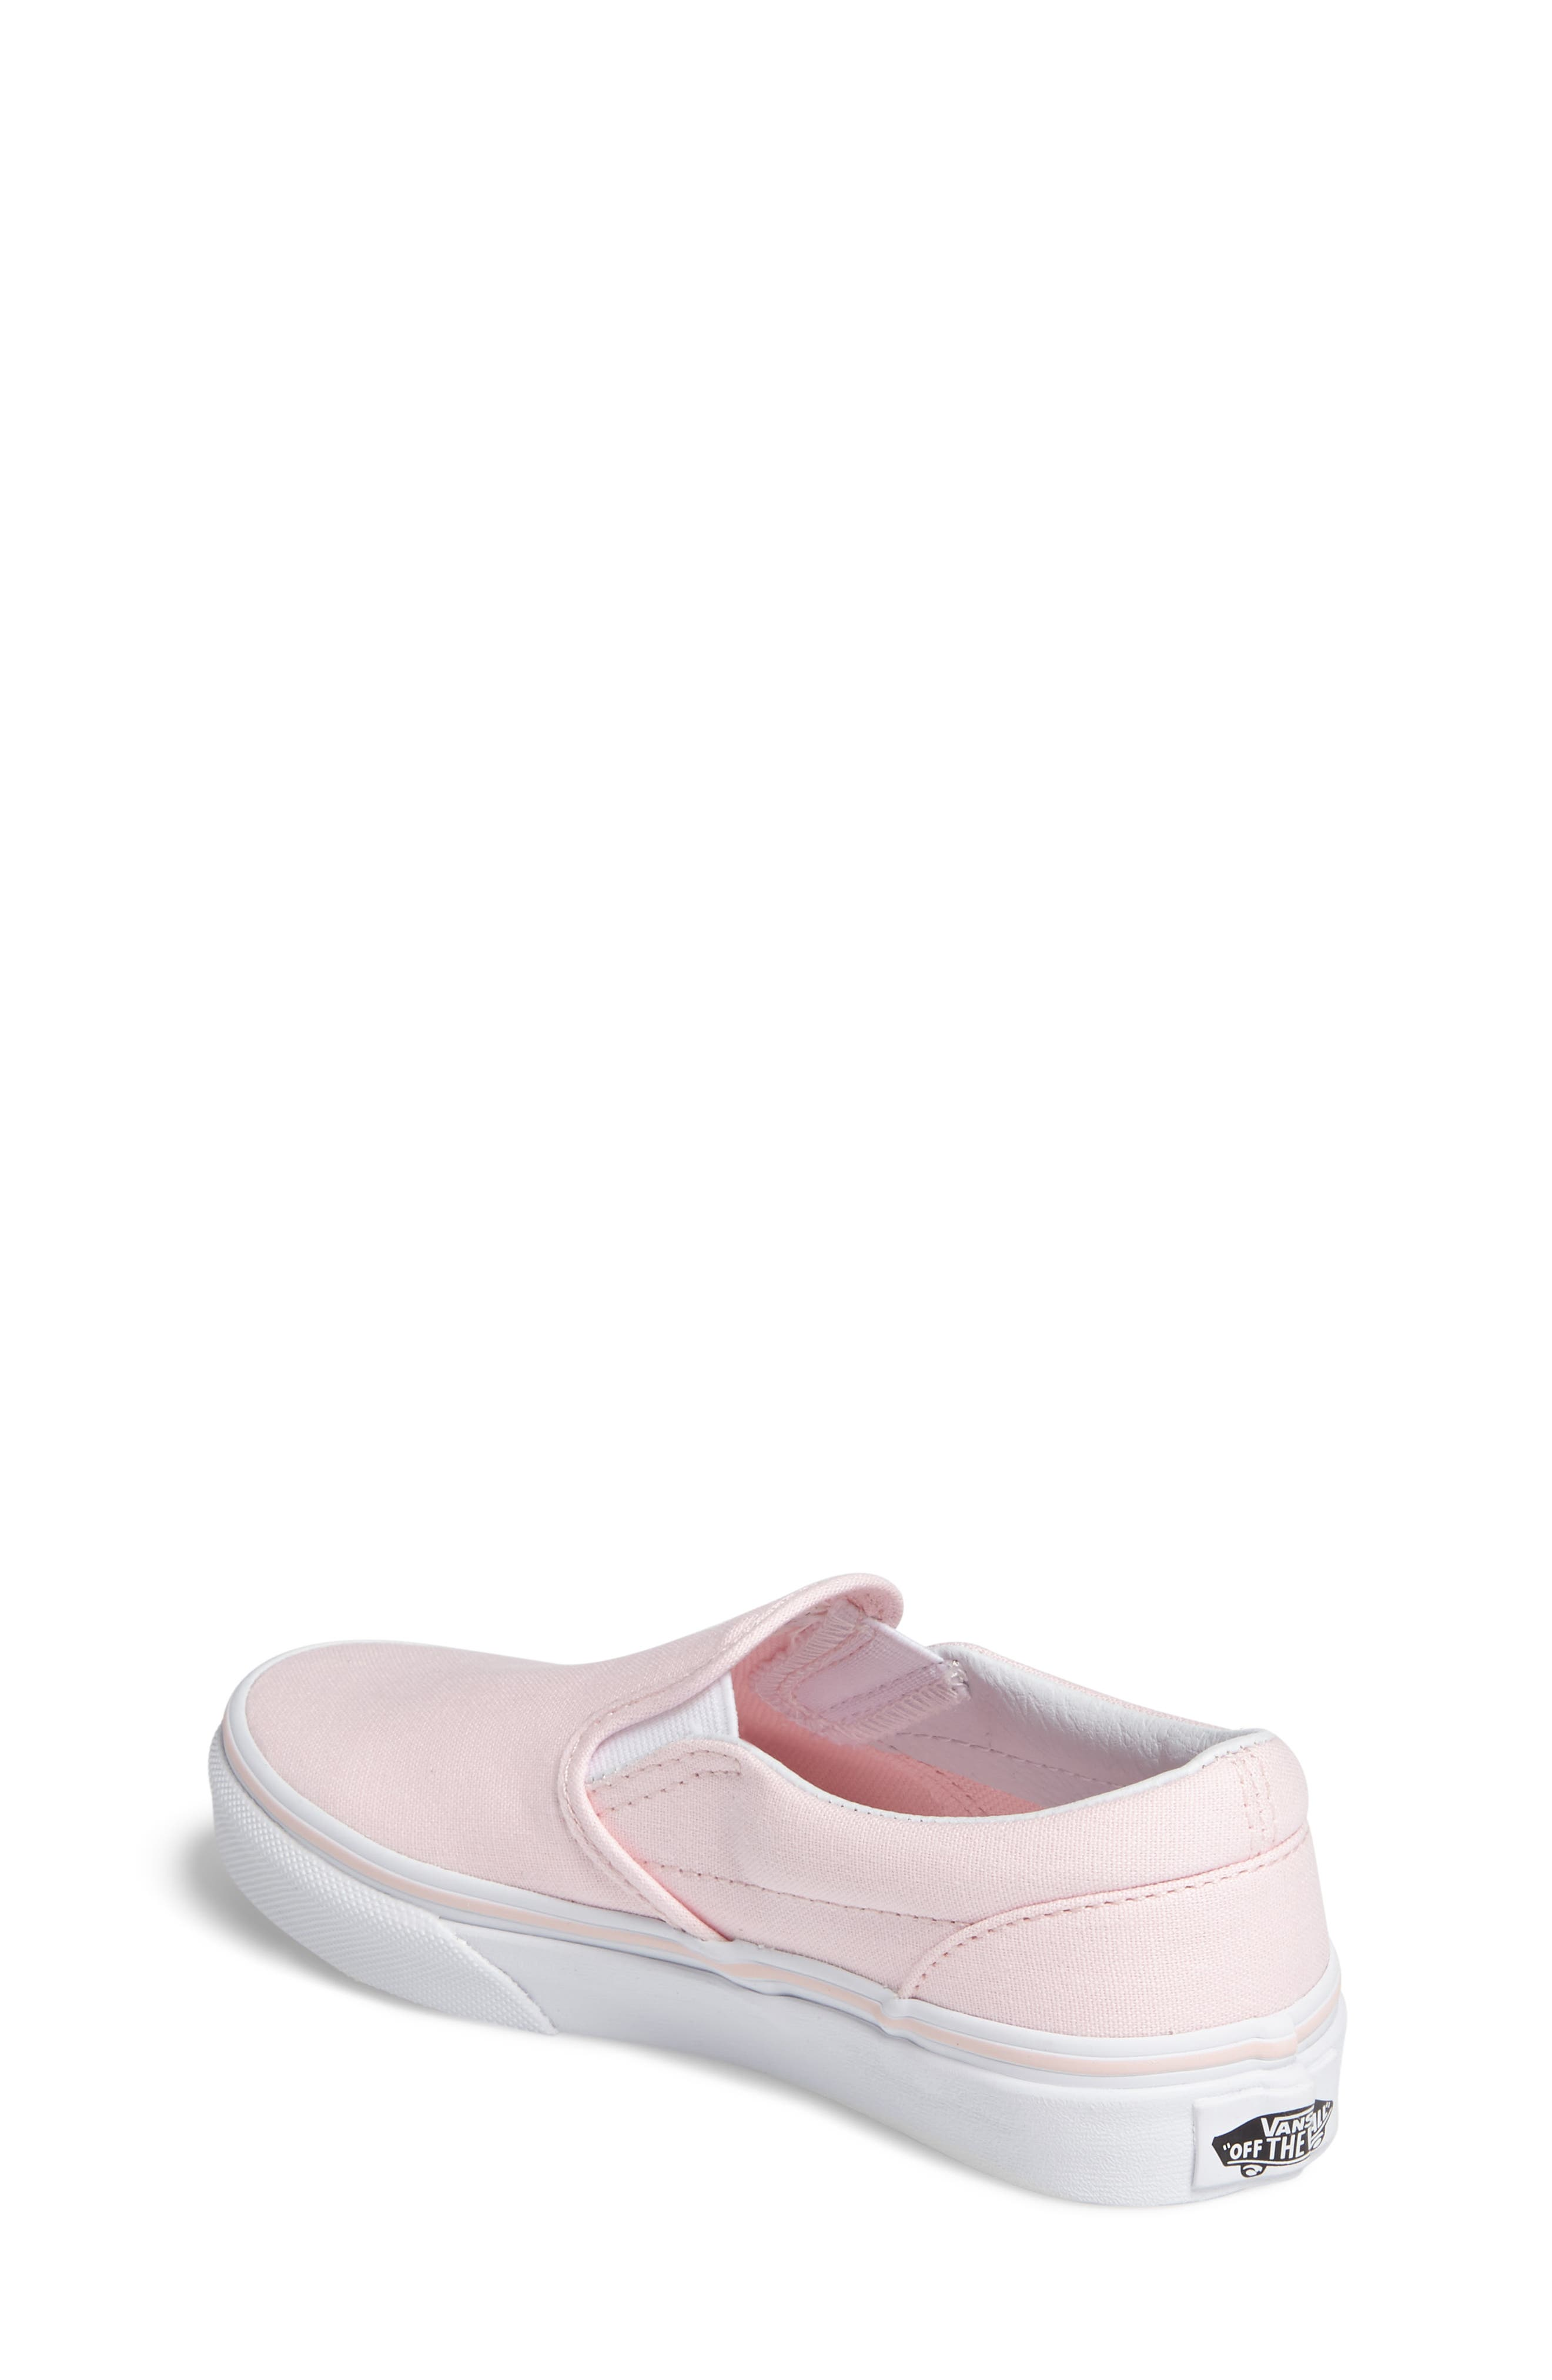 Classic Slip-On Sneaker,                             Alternate thumbnail 2, color,                             Ballerina/ True White